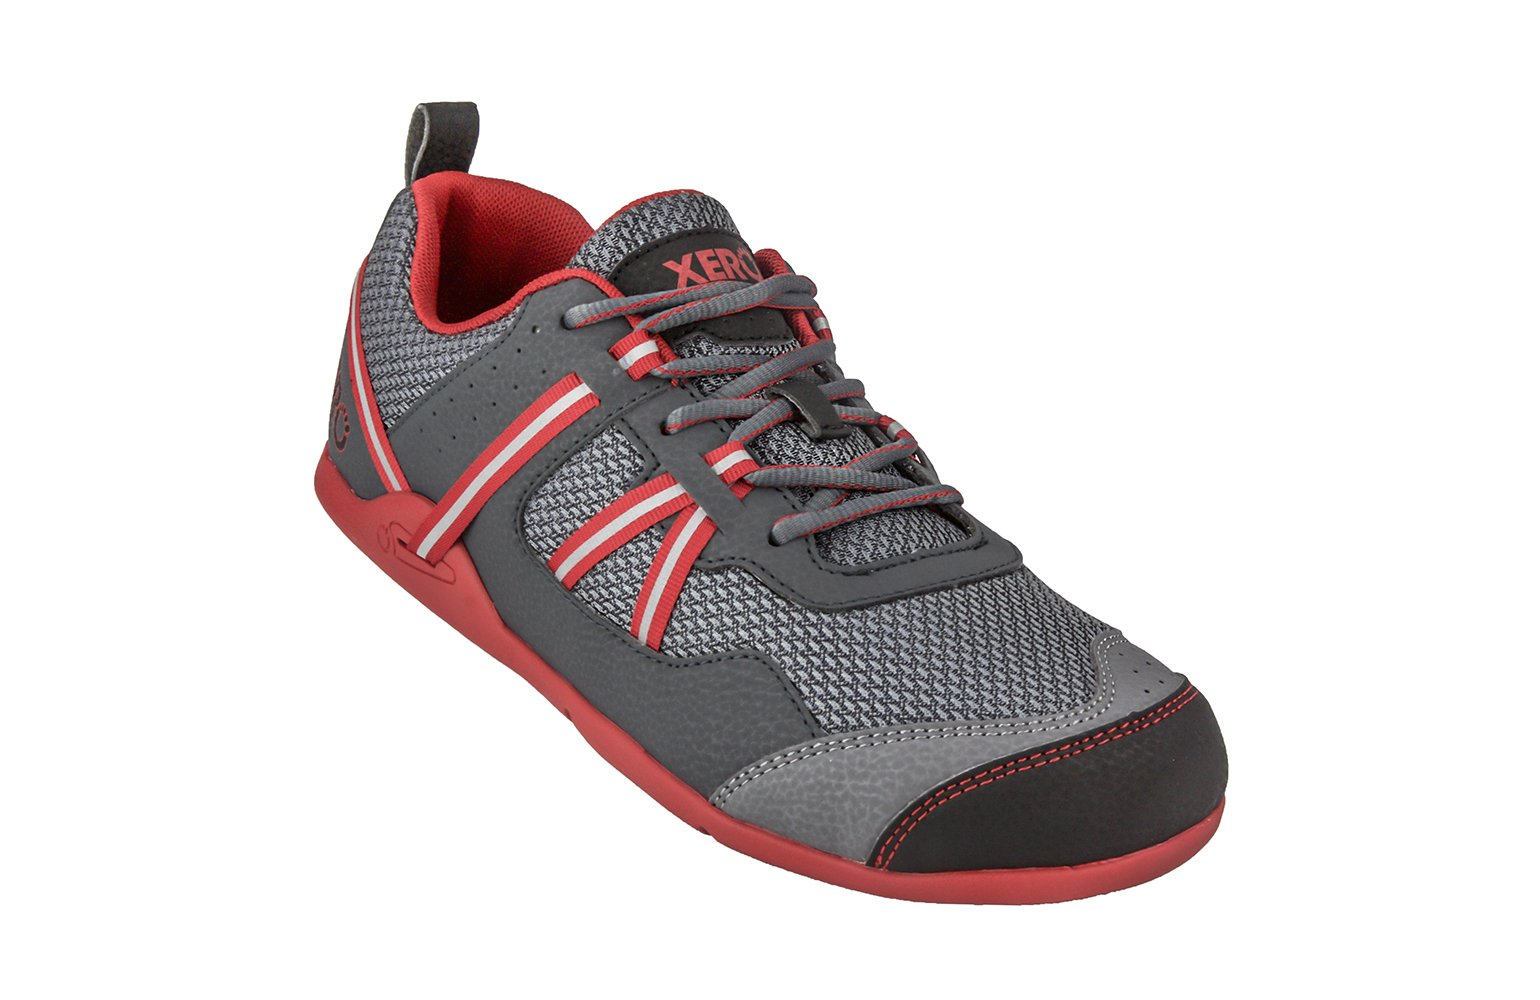 Xero Shoes Prio - Men's Minimalist Barefoot Trail and Road Running Shoe - Fitness, Athletic Zero Drop Sneaker - Charcoal Red by Xero Shoes (Image #1)